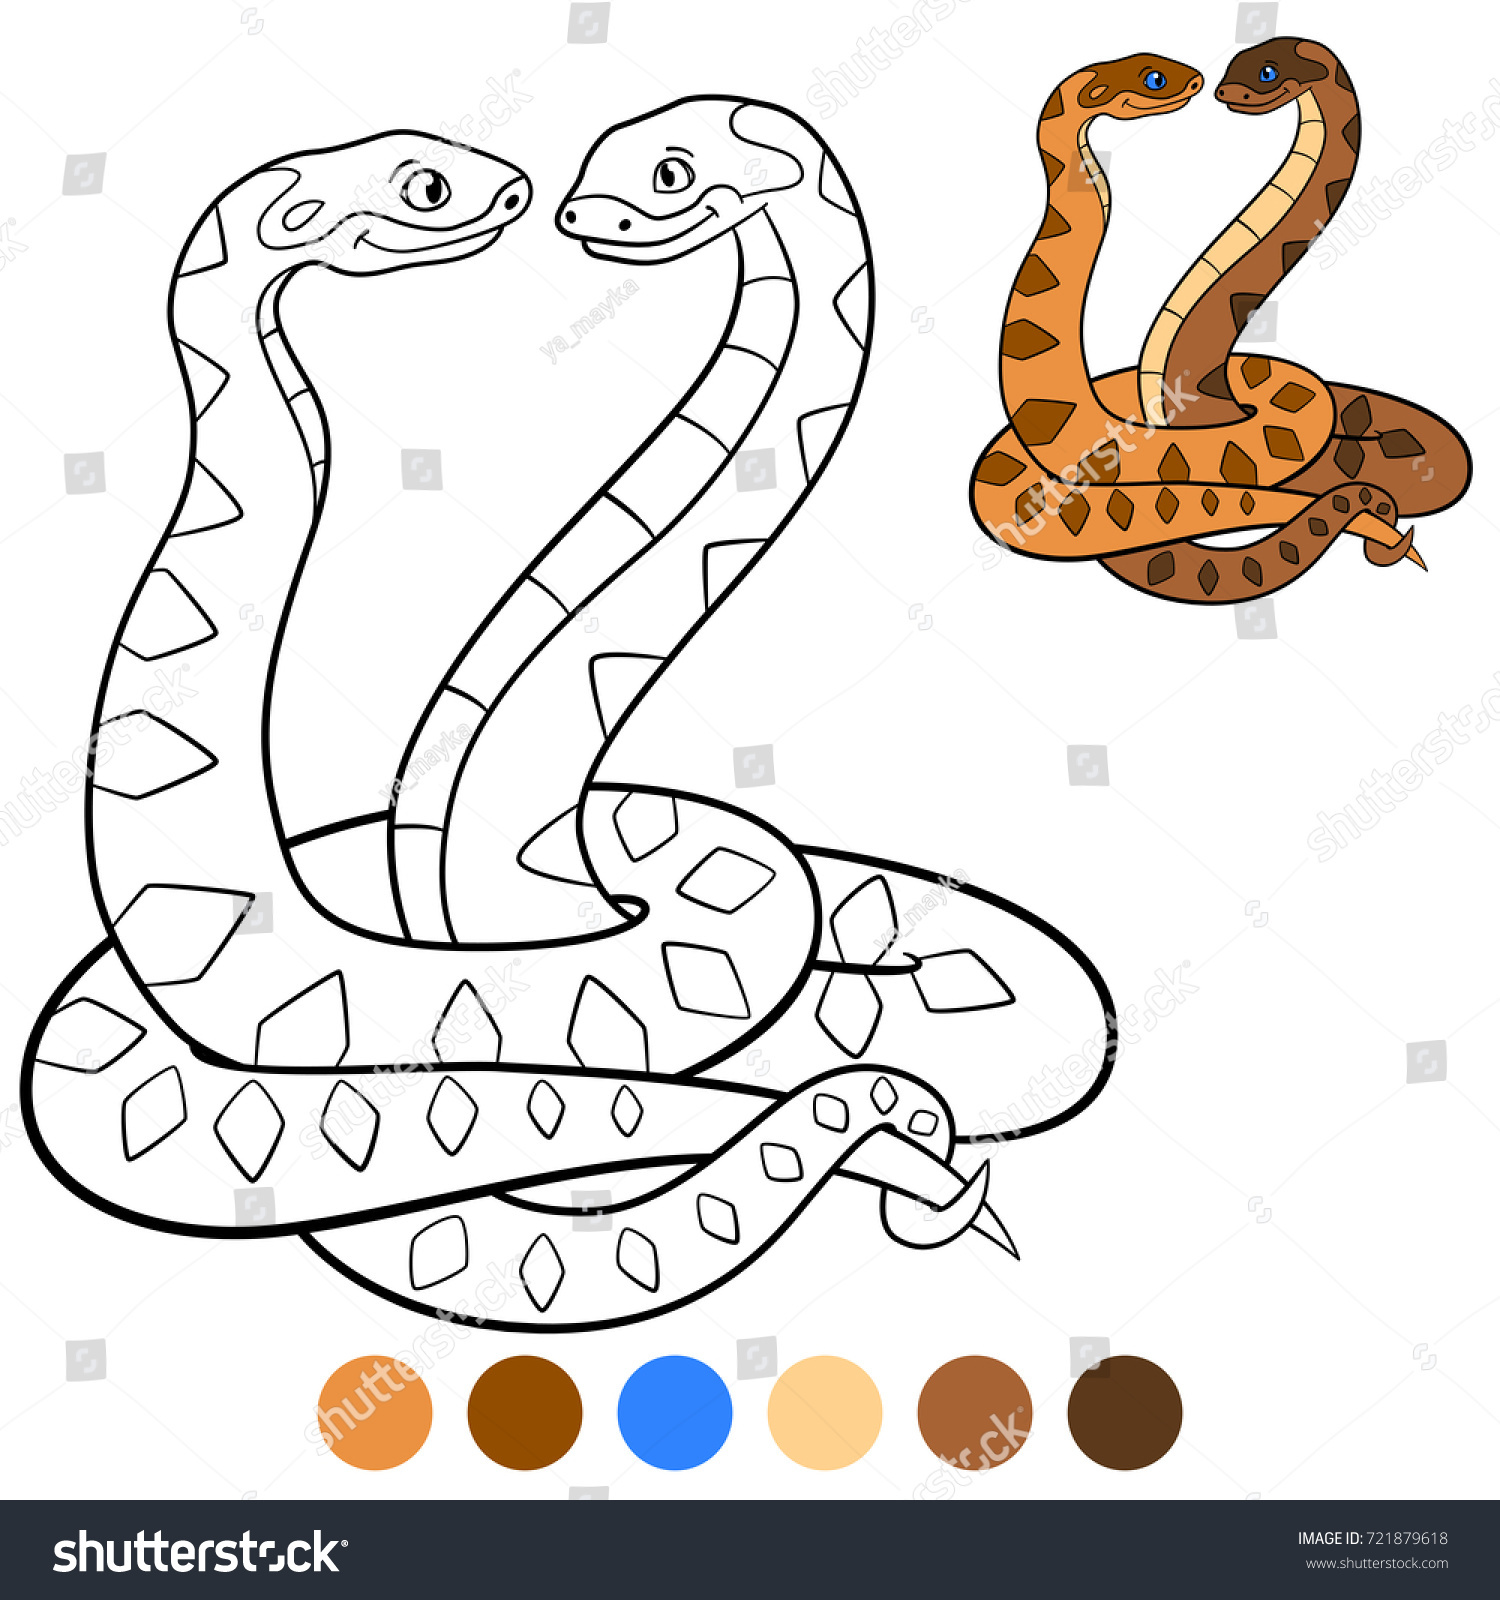 color me viper two cute vipers stock vector shutterstock